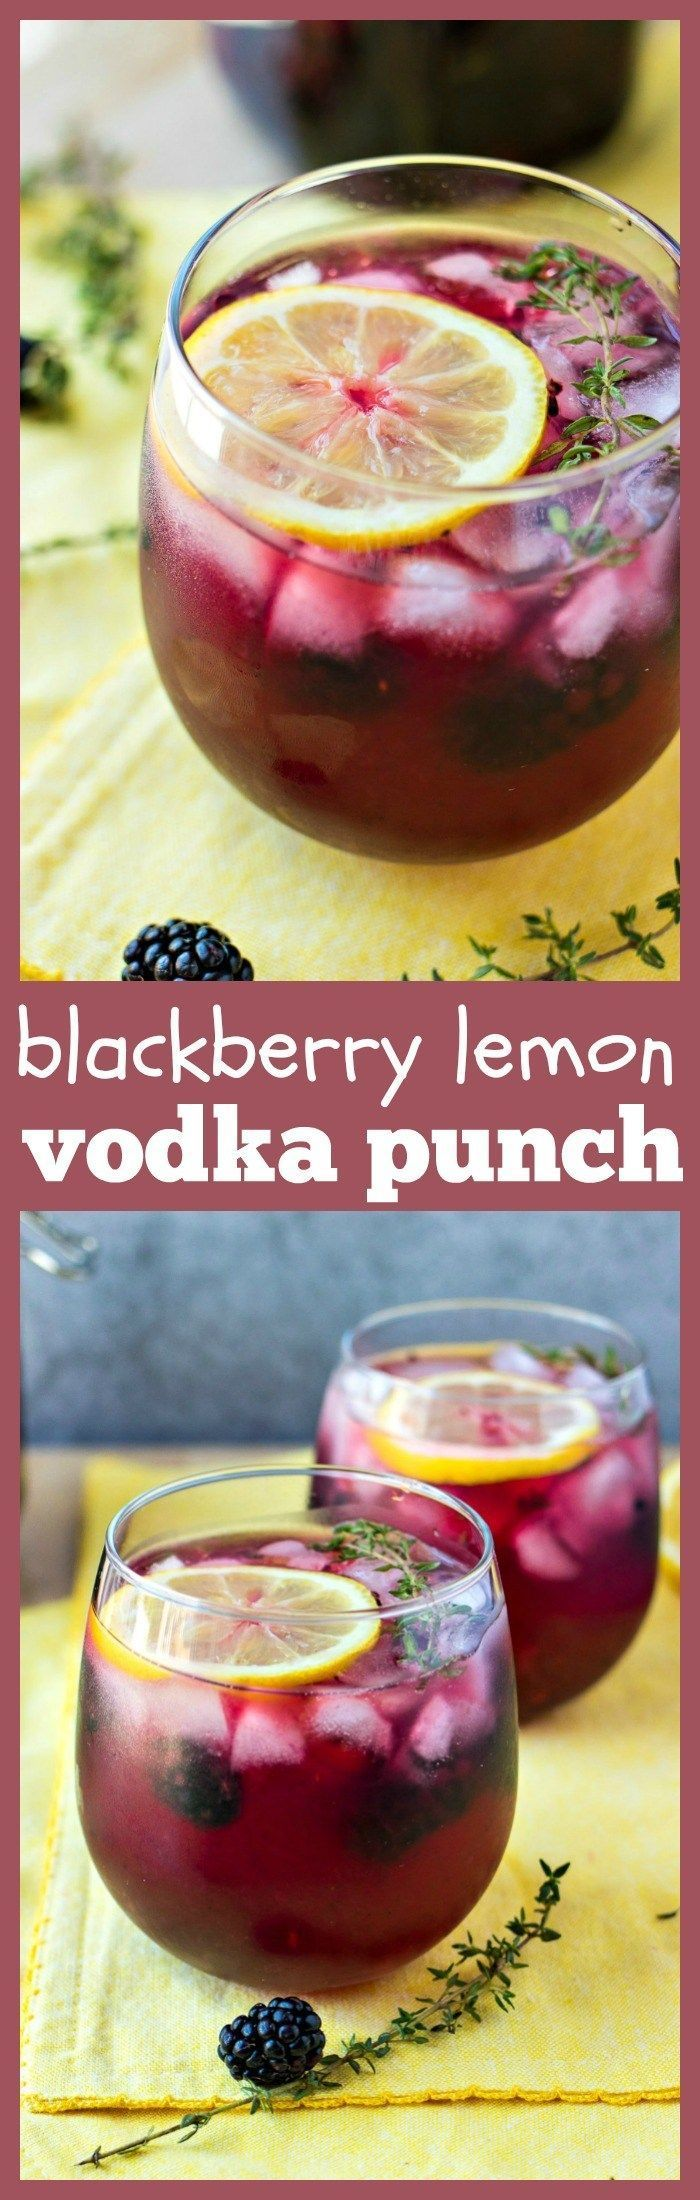 Blackberry Lemon Vodka Punch - CPA: Certified Pastry Aficionado #vodkapunch Blackberry Lemon Vodka Punch - CPA: Certified Pastry Aficionado #vodkapunch Blackberry Lemon Vodka Punch - CPA: Certified Pastry Aficionado #vodkapunch Blackberry Lemon Vodka Punch - CPA: Certified Pastry Aficionado #vodkapunch